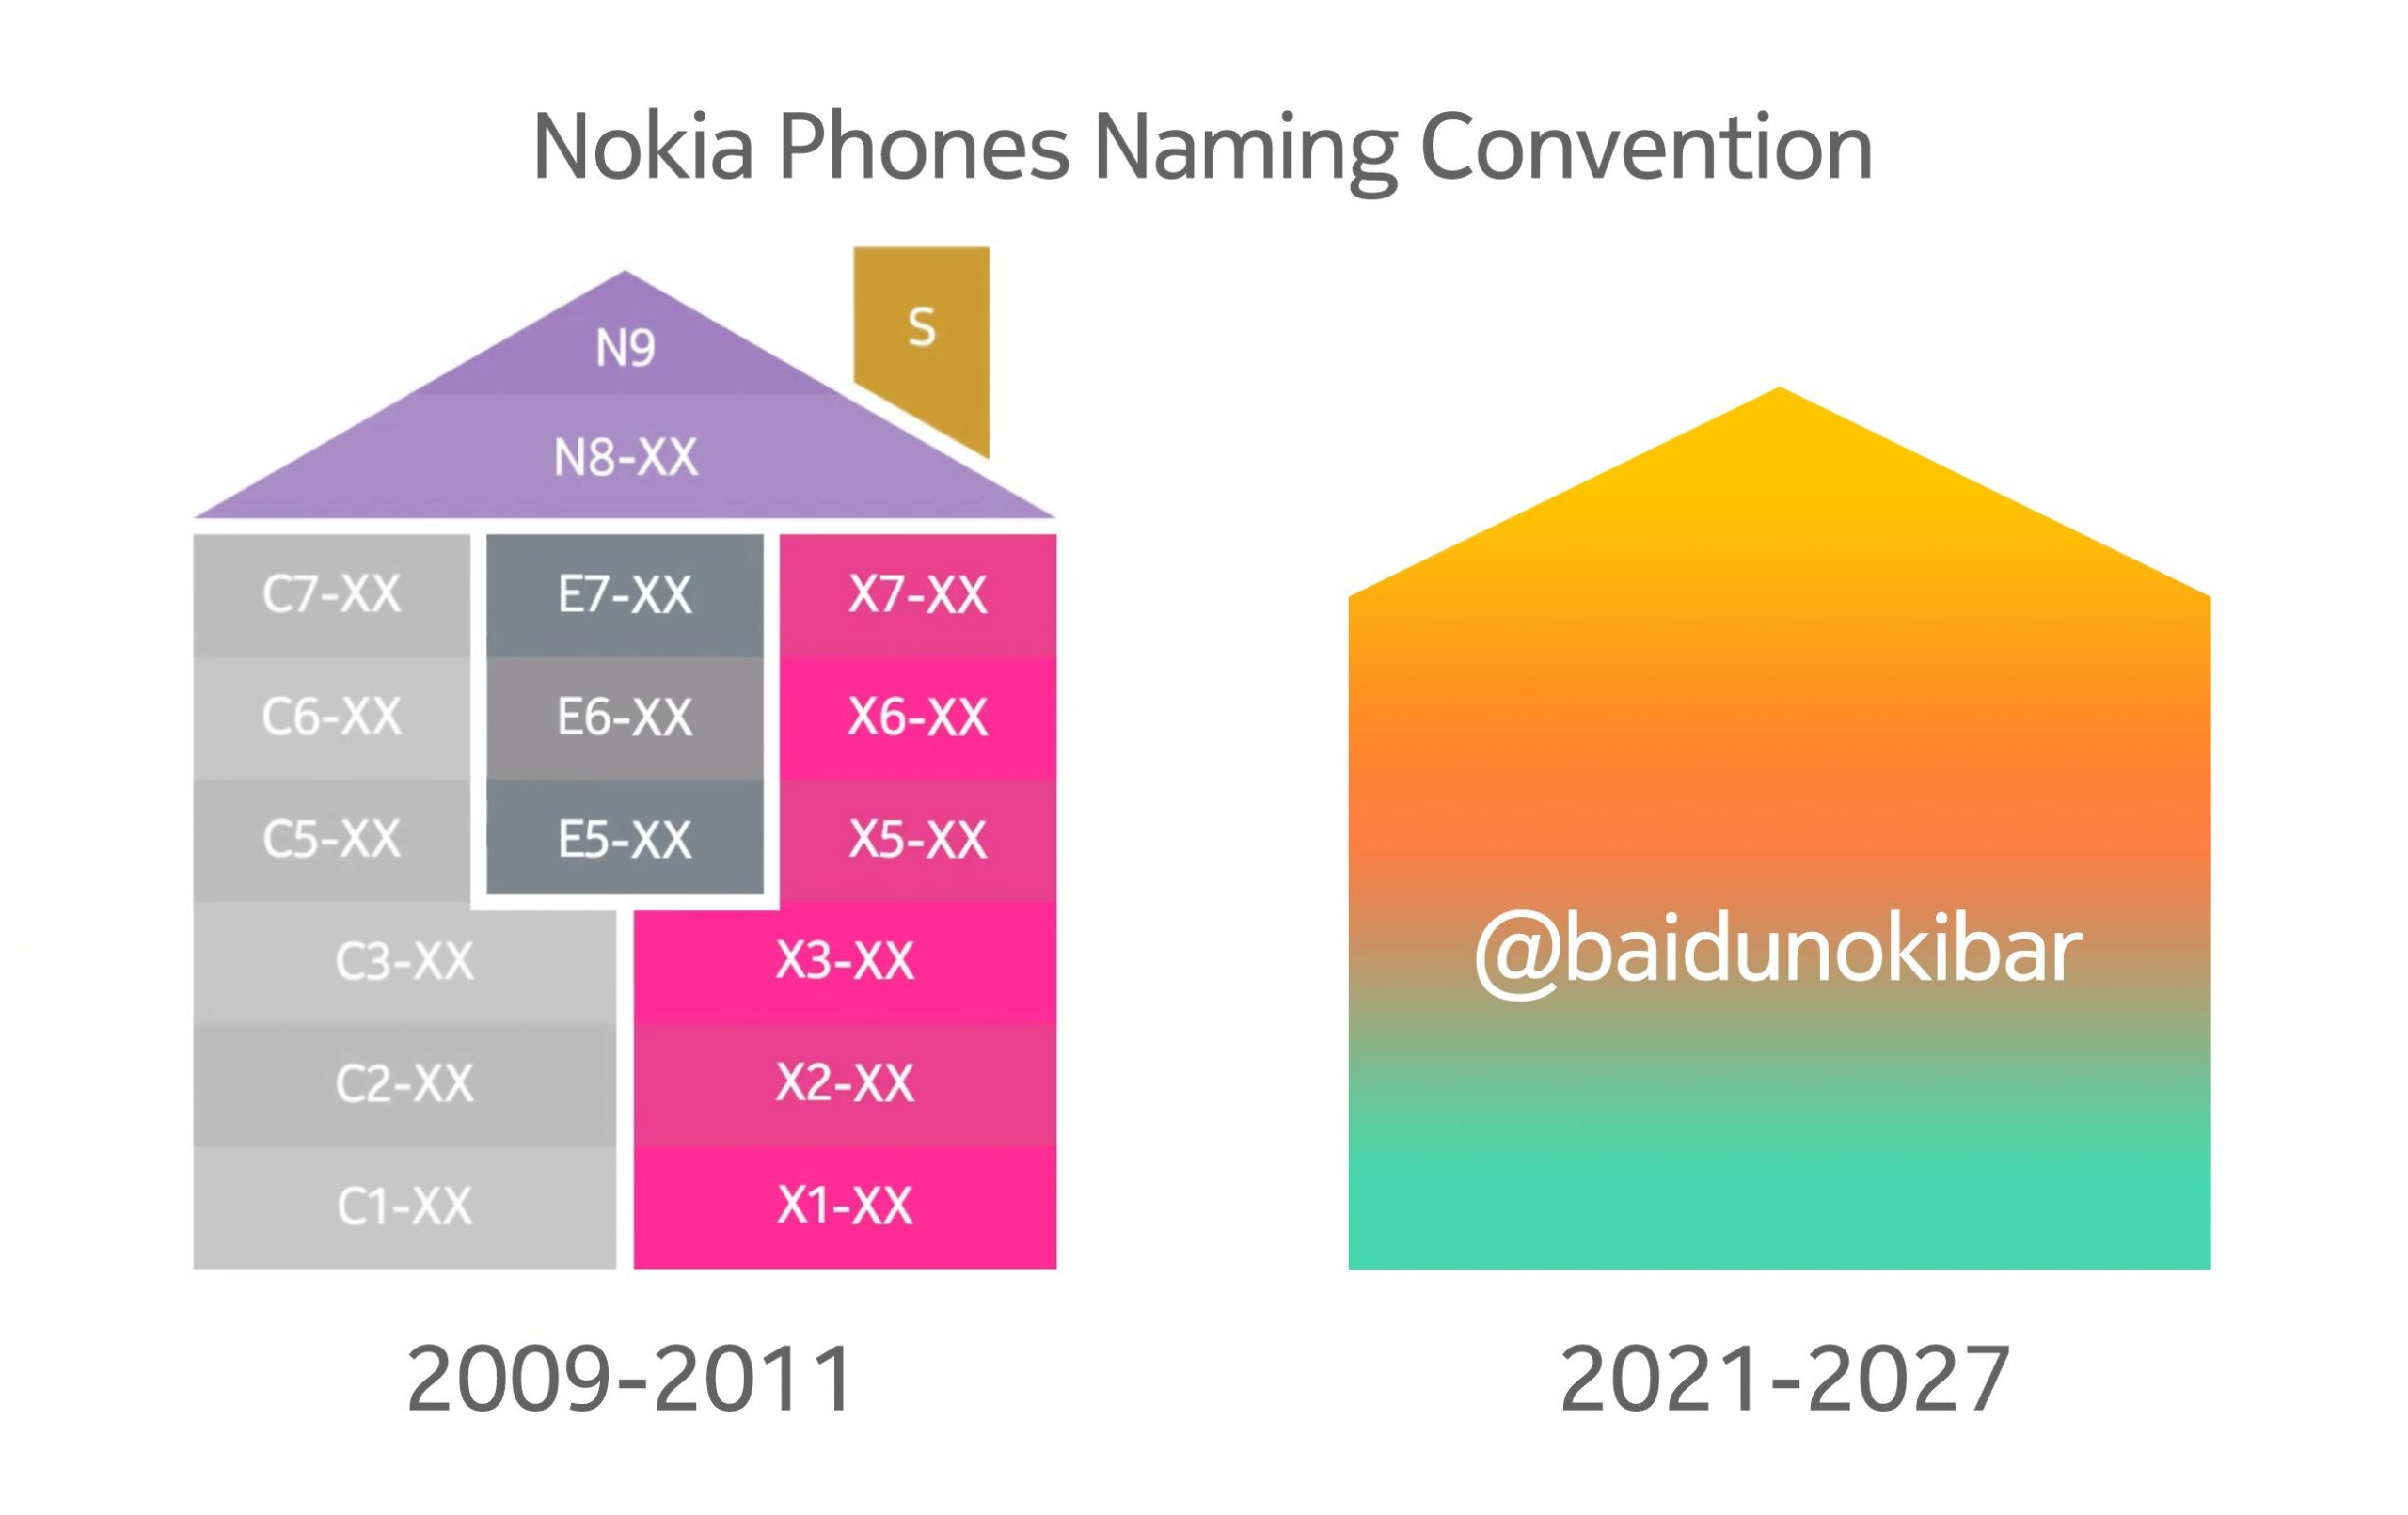 """Nokia Mobile to introduce new naming convention, drop the """"dot"""" from names?! - Nokiamob"""